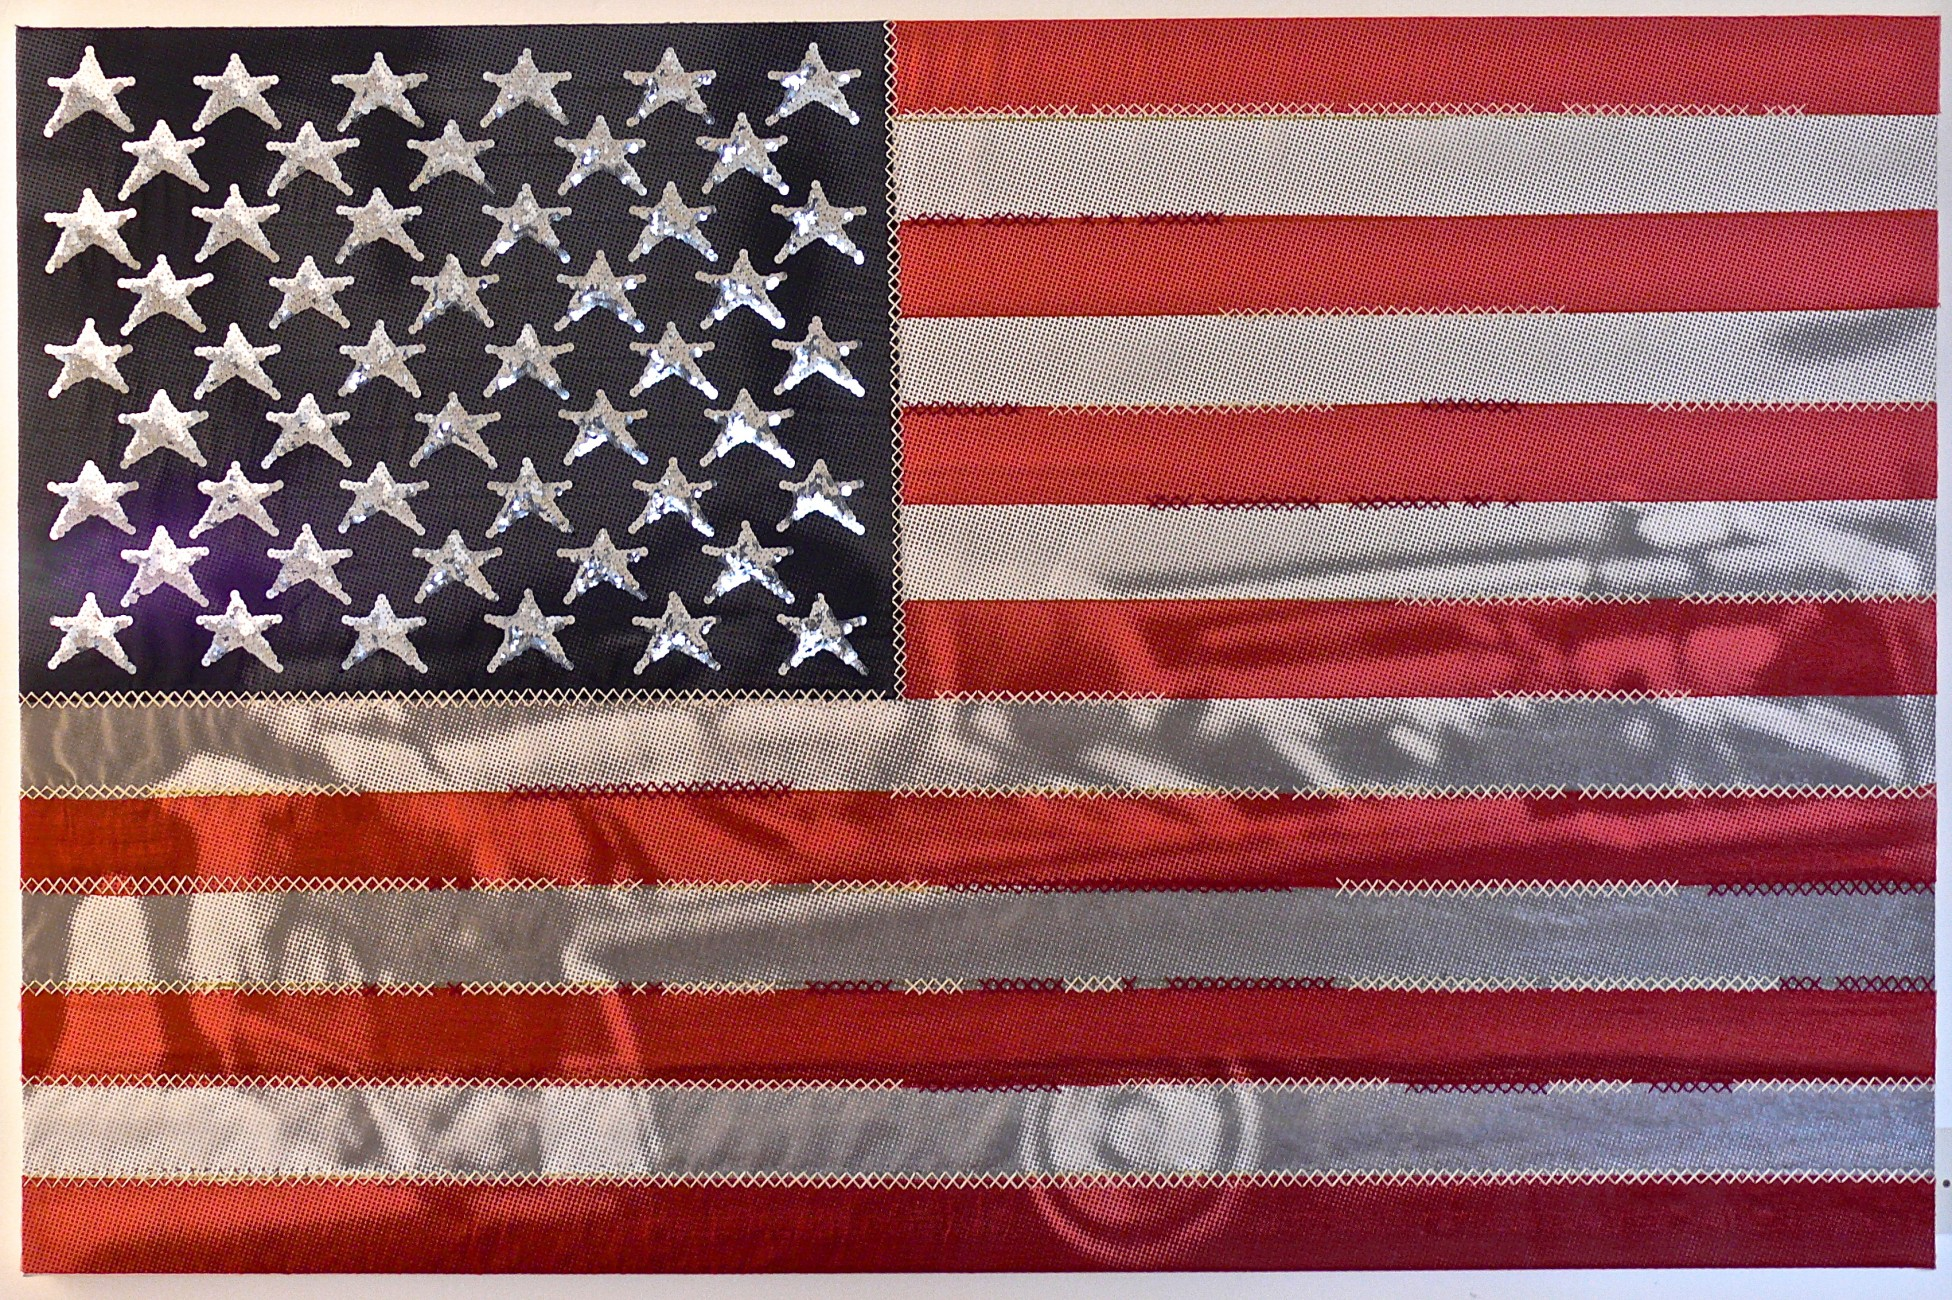 JFK - Stars and Stripes